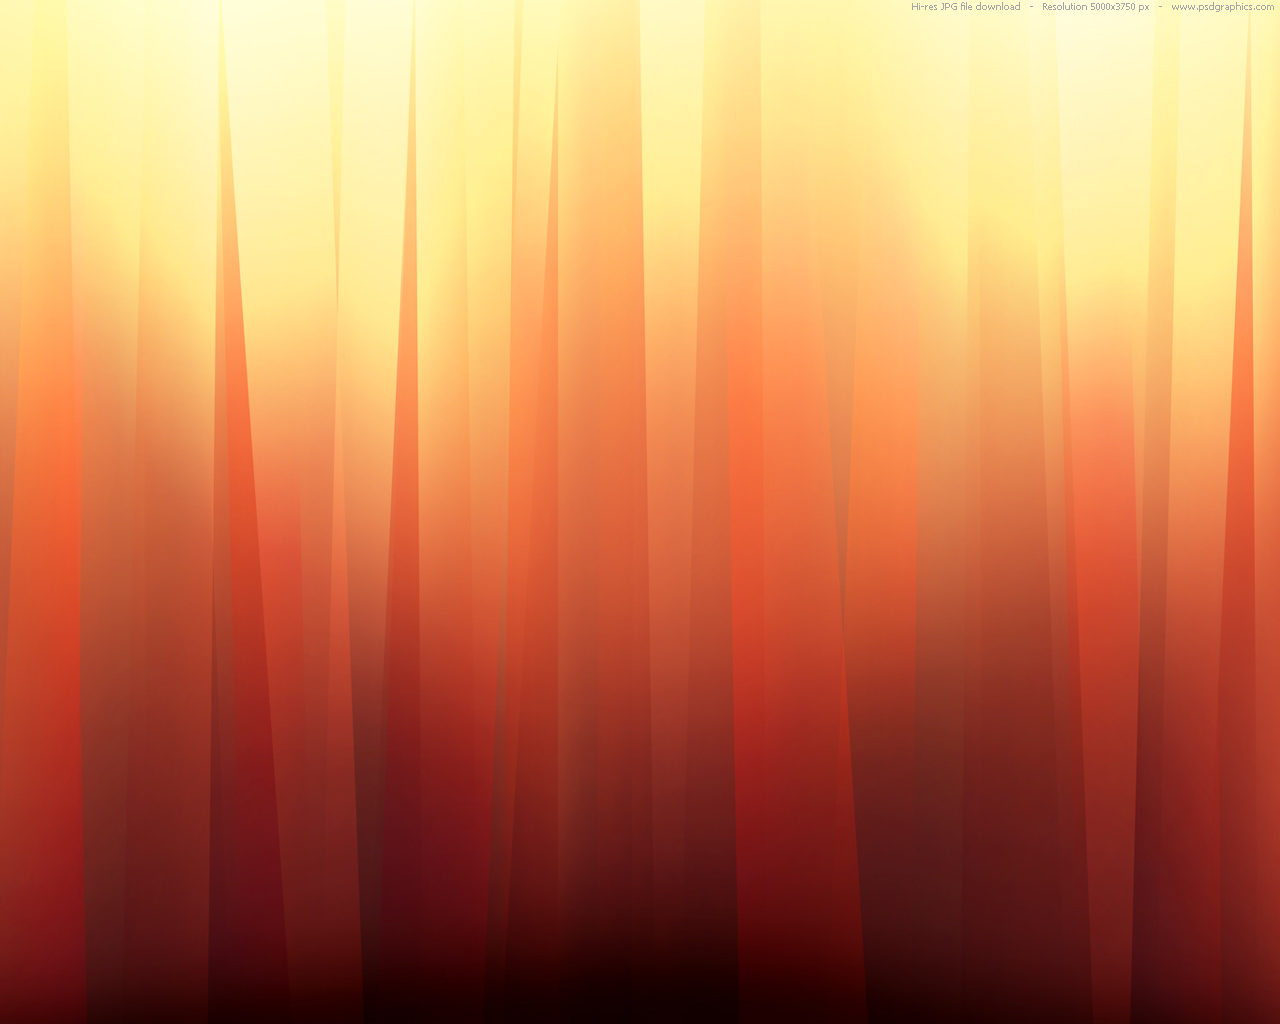 backgrounds background photoshop designs abstract these size 1280x1024